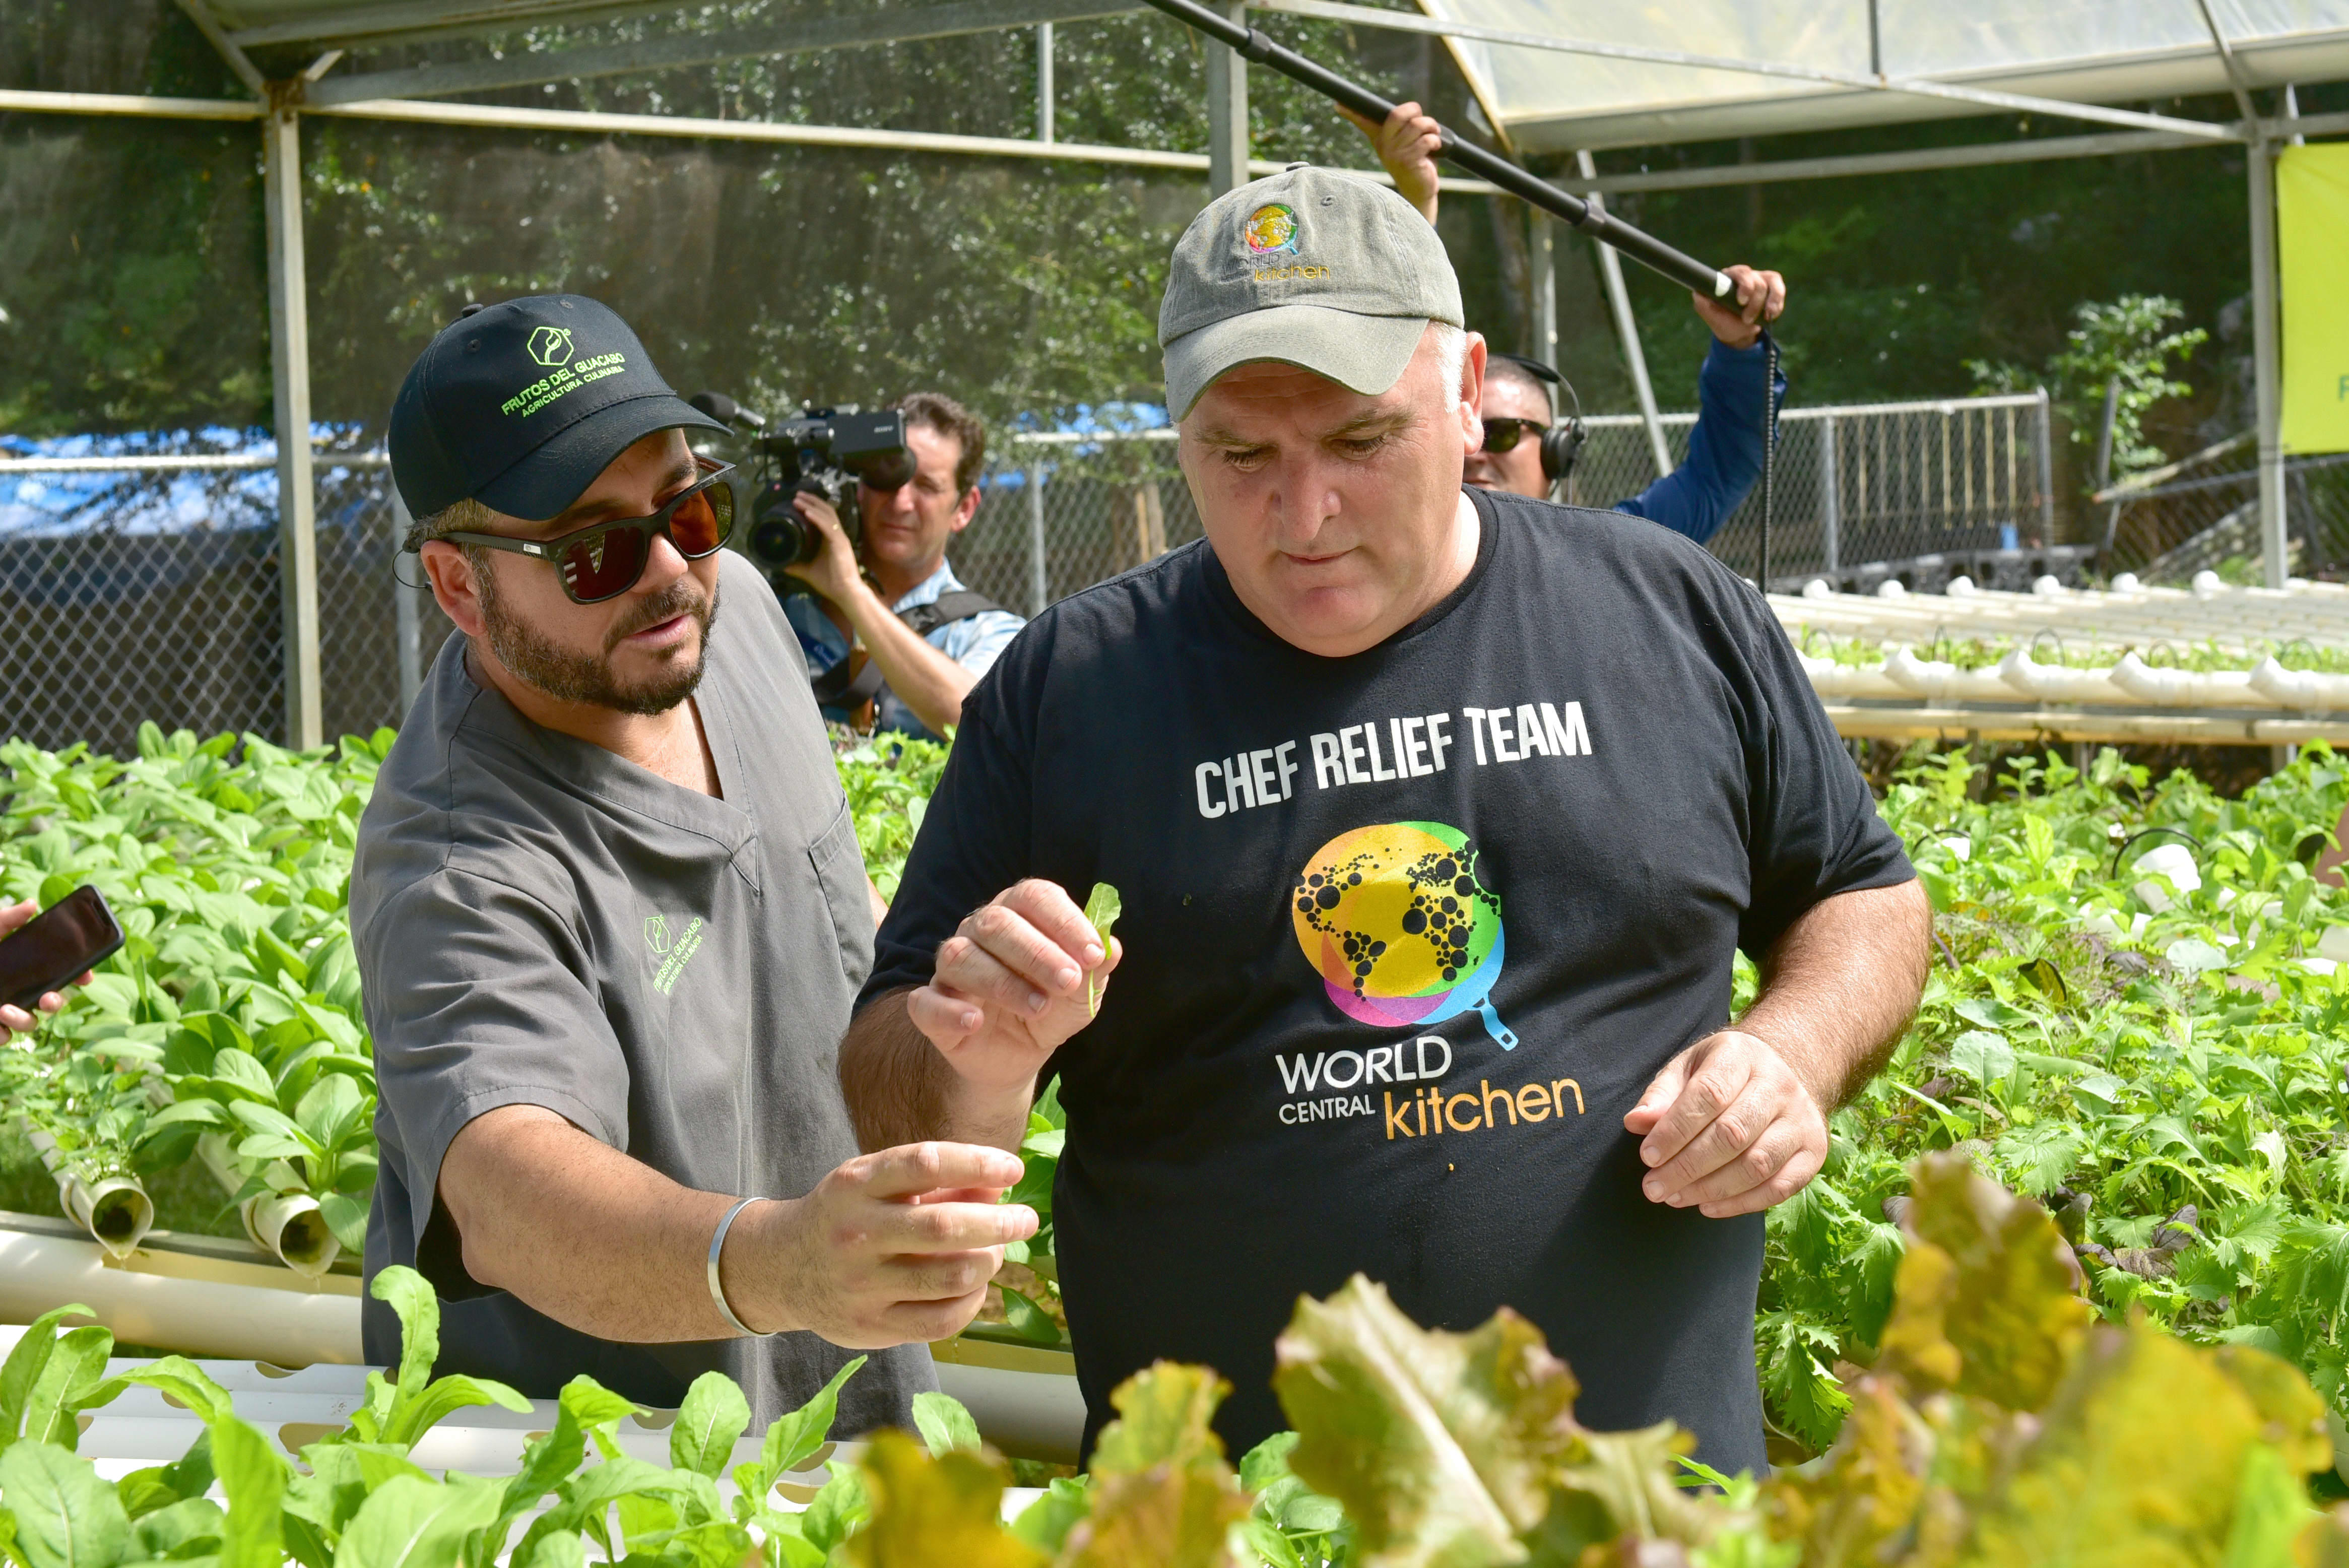 Ludacris, Chef José Andrés and others who are helping the victims of Hurricane Dorian